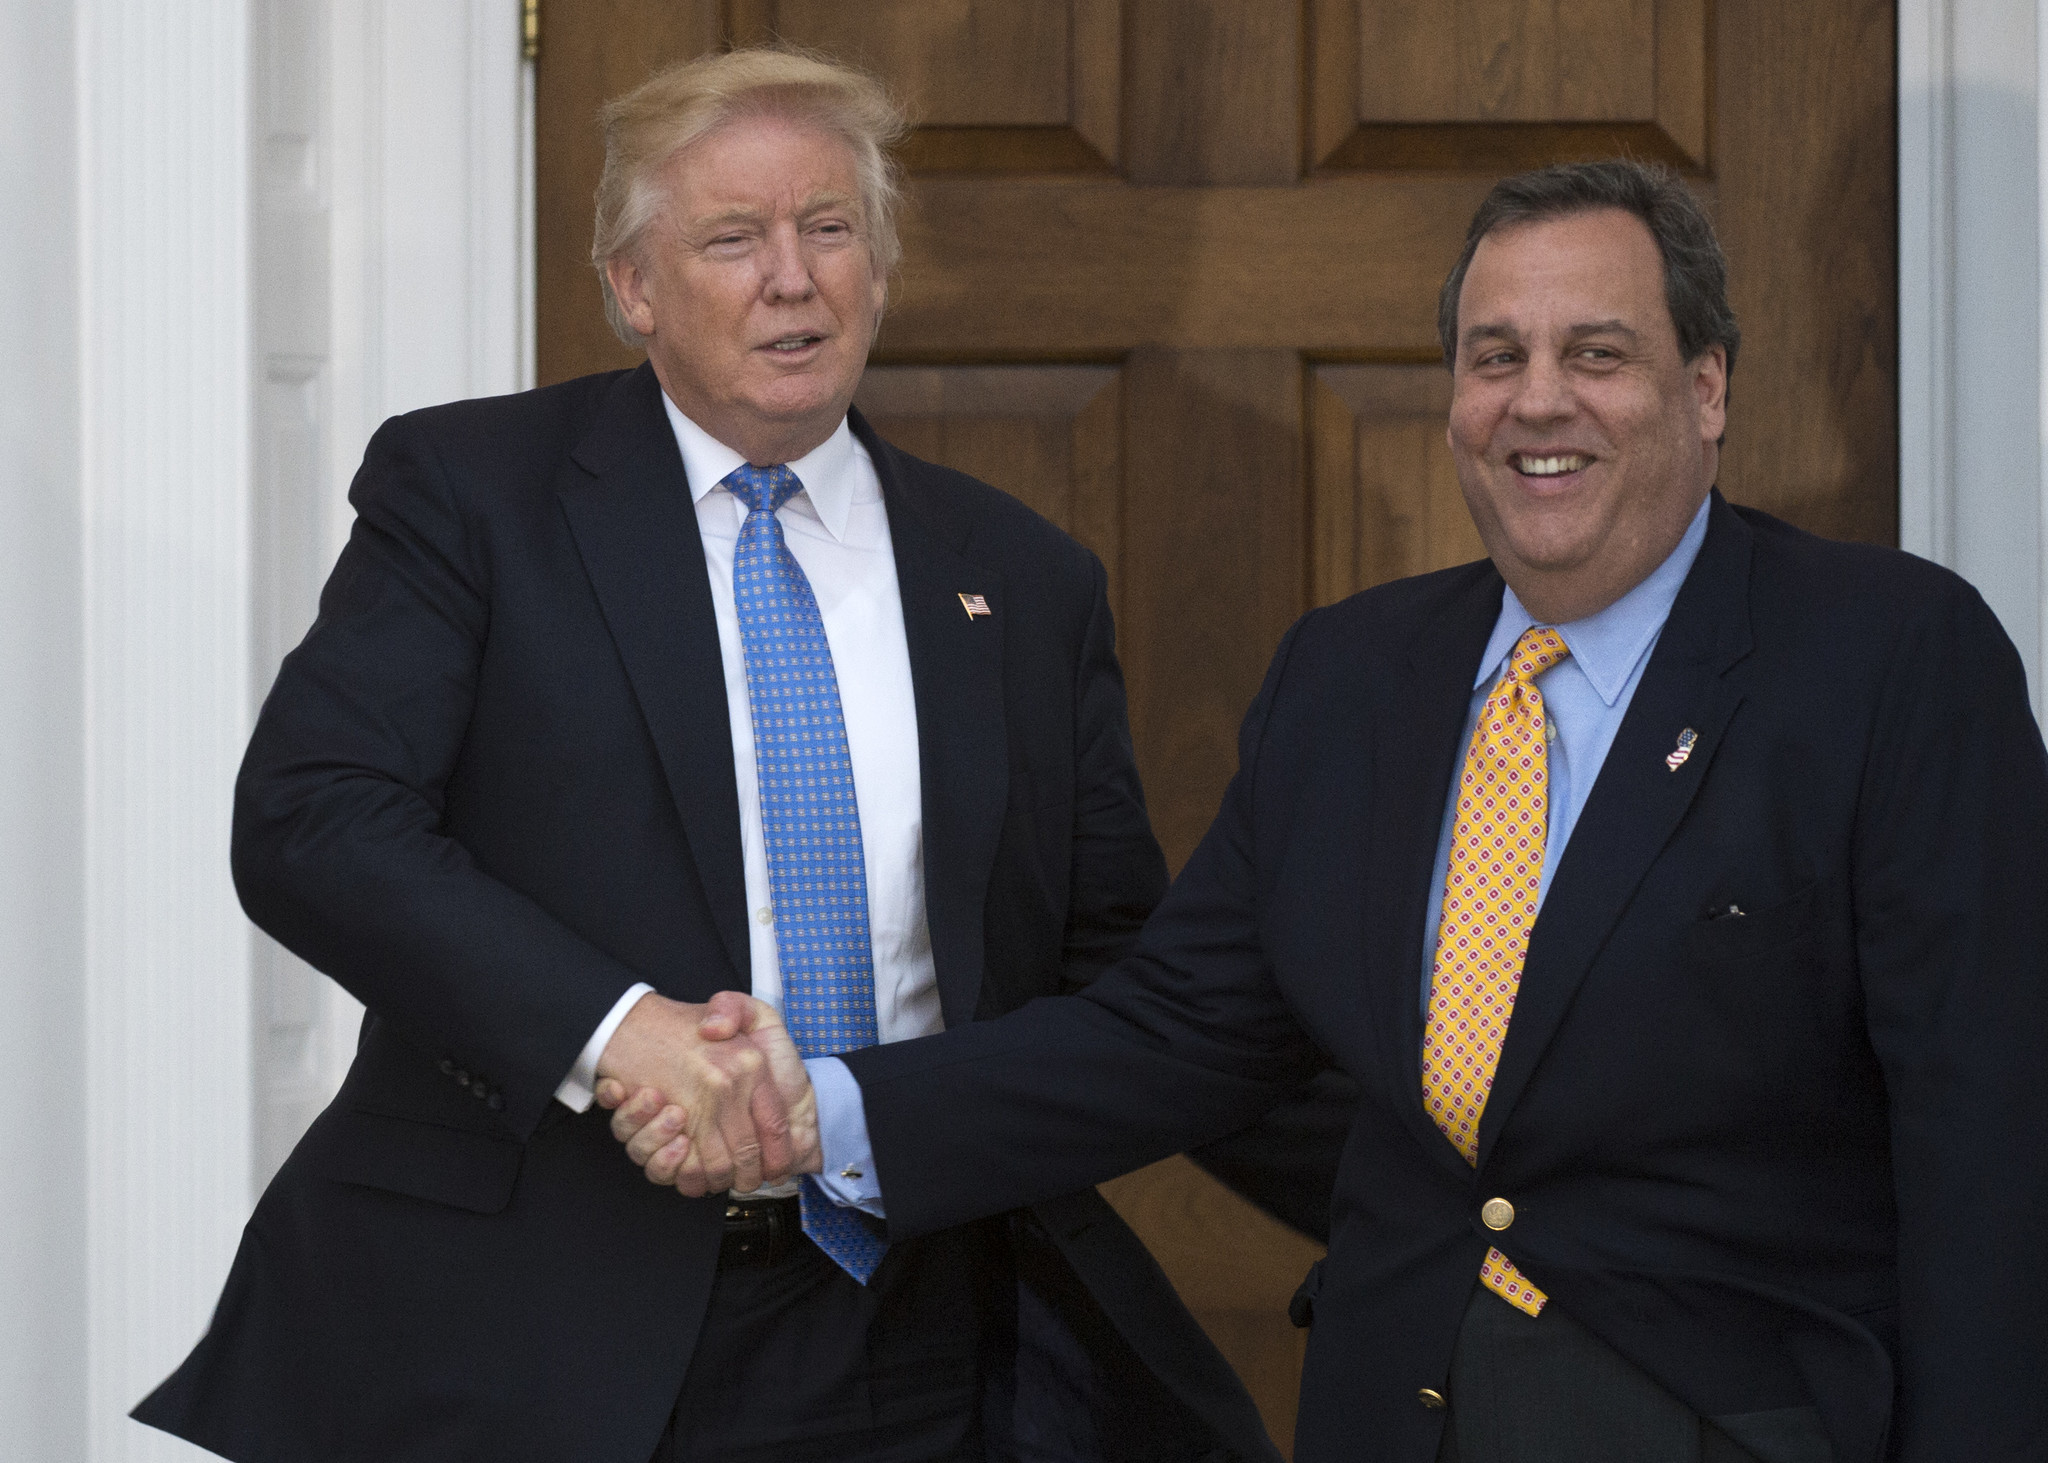 President Trump gave Chris Christie fashion tips on how to appear thinner